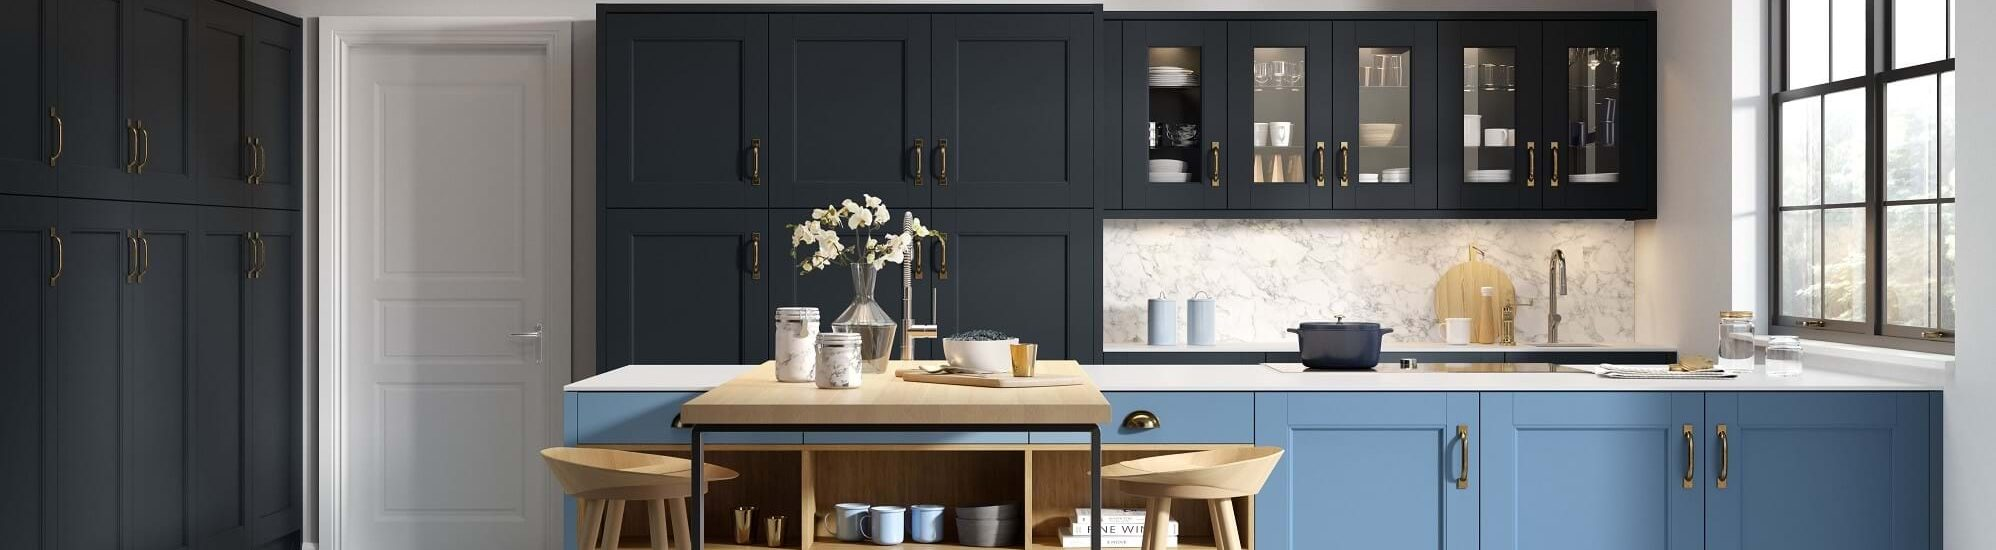 Chippendale kitchen in blue colour scheme with navy and blue kitchen cabinets and wood worktop